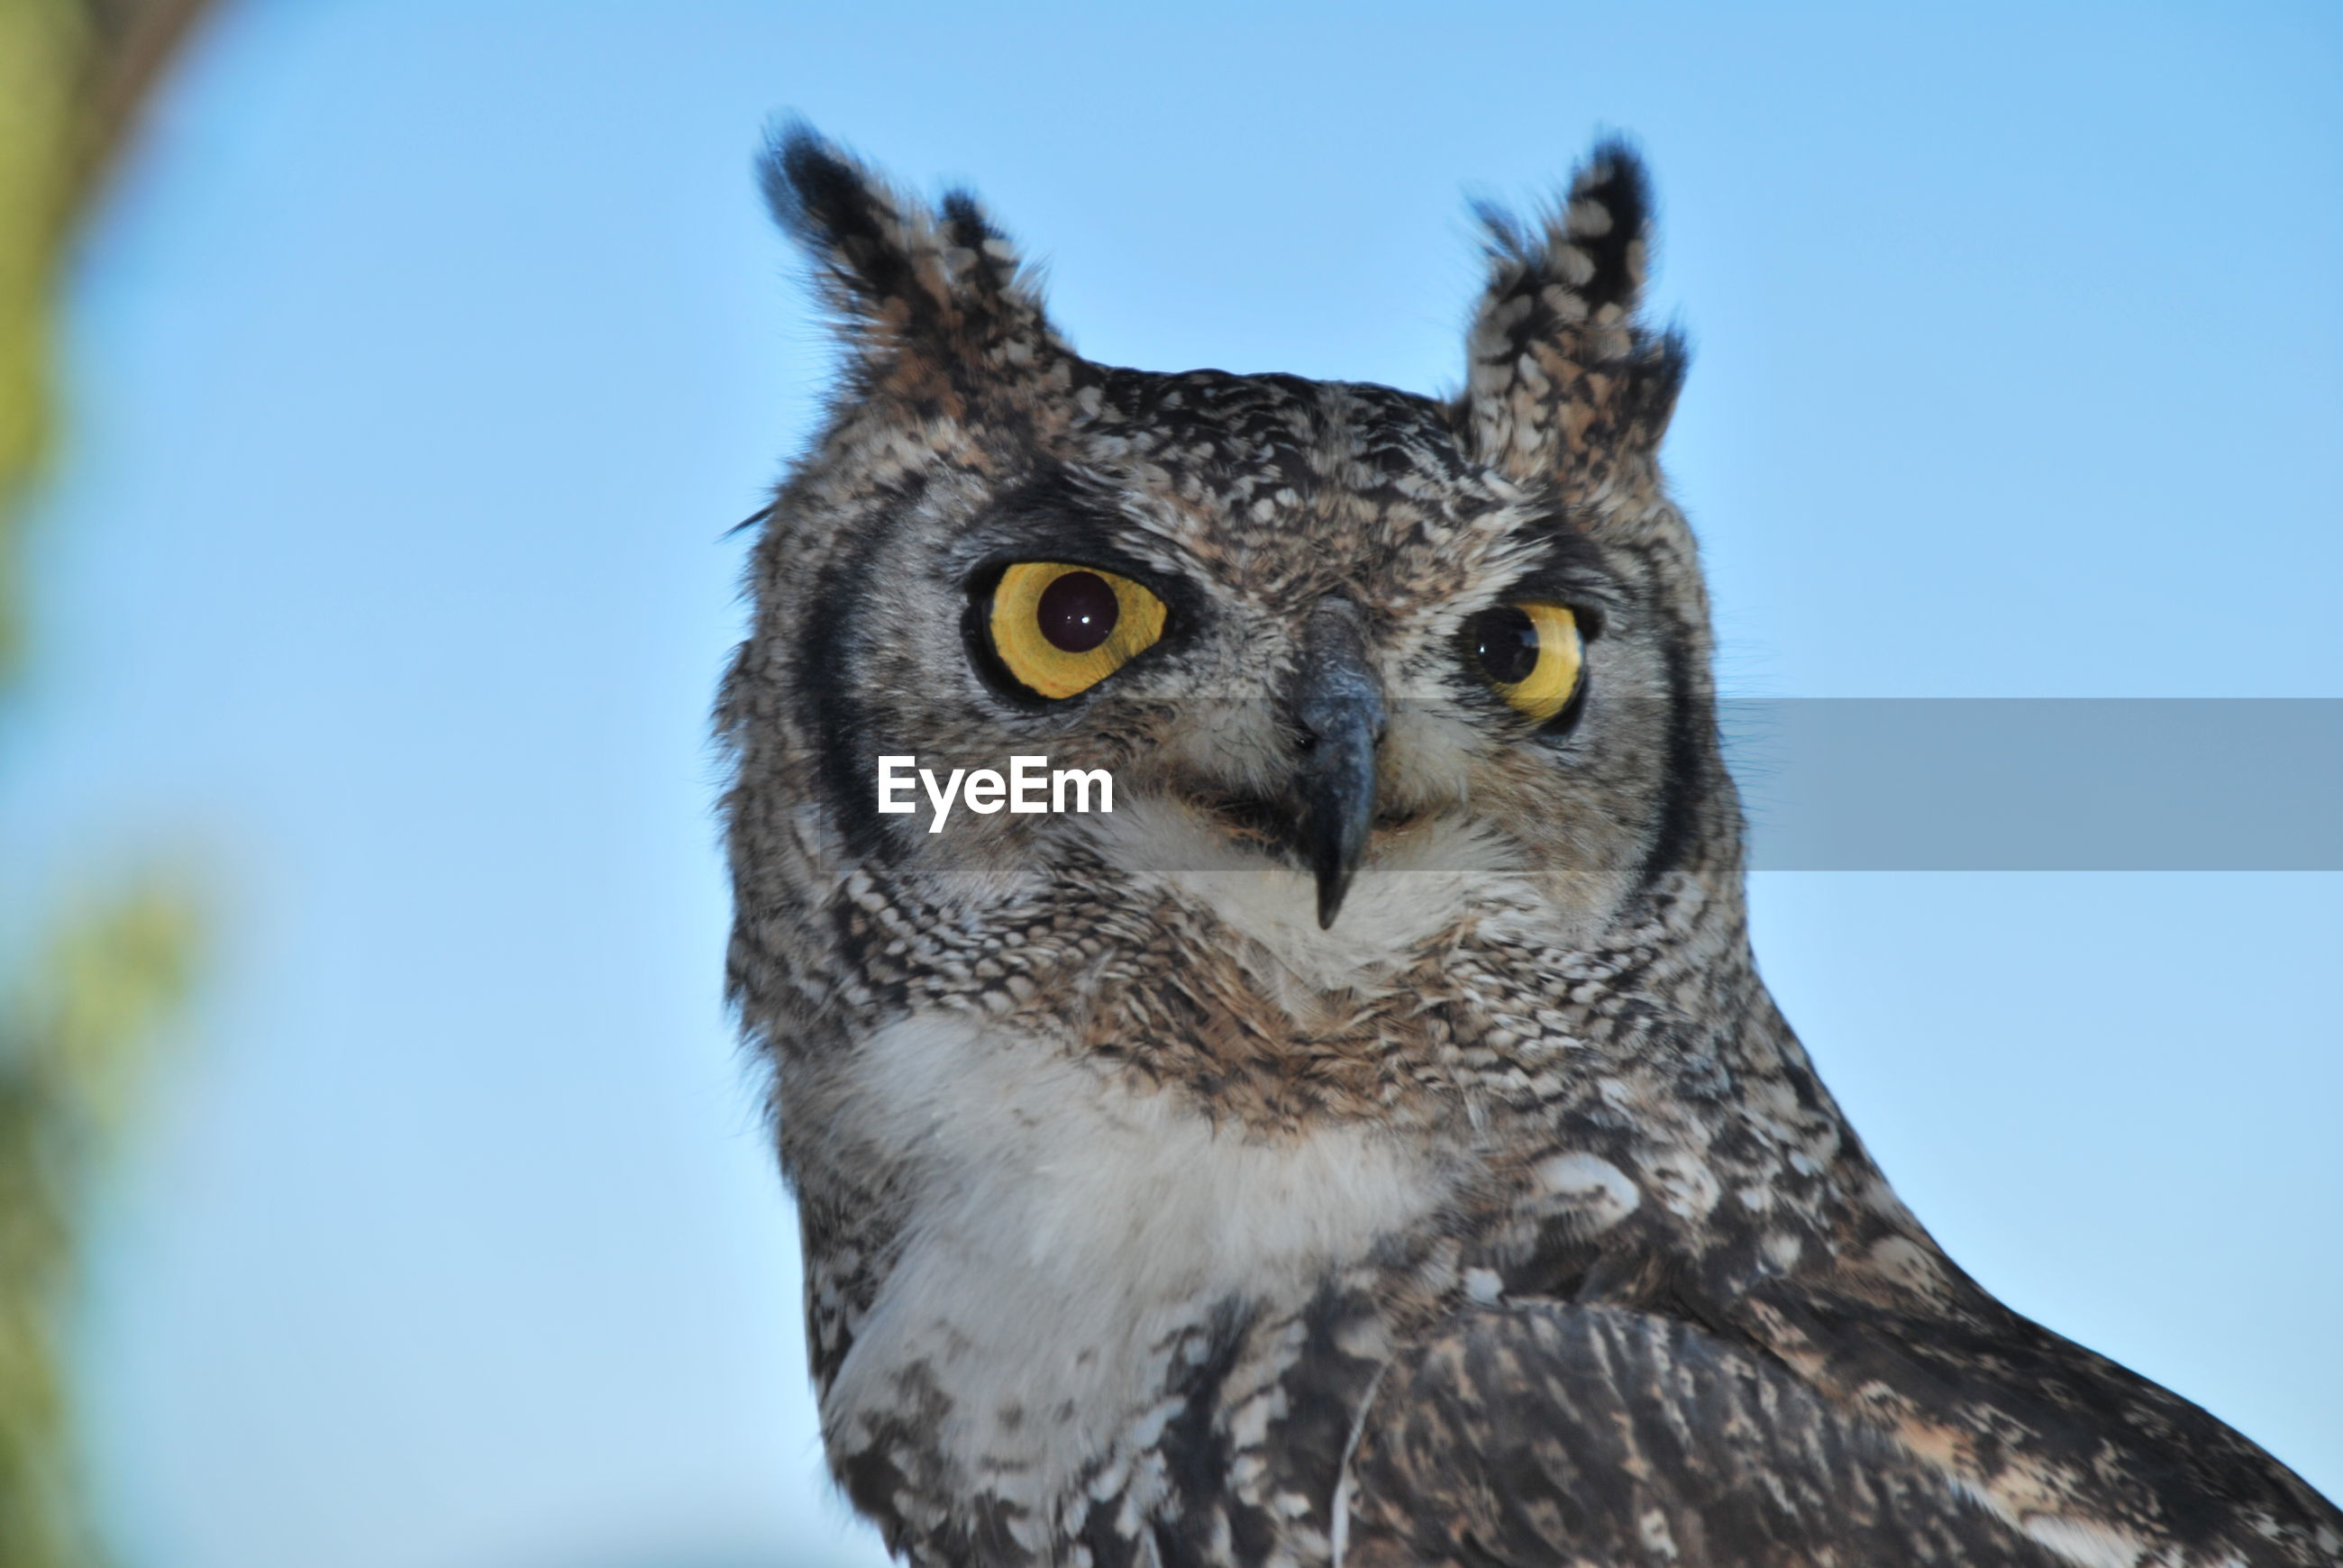 LOW ANGLE VIEW OF OWL PERCHING ON ROCK AGAINST SKY